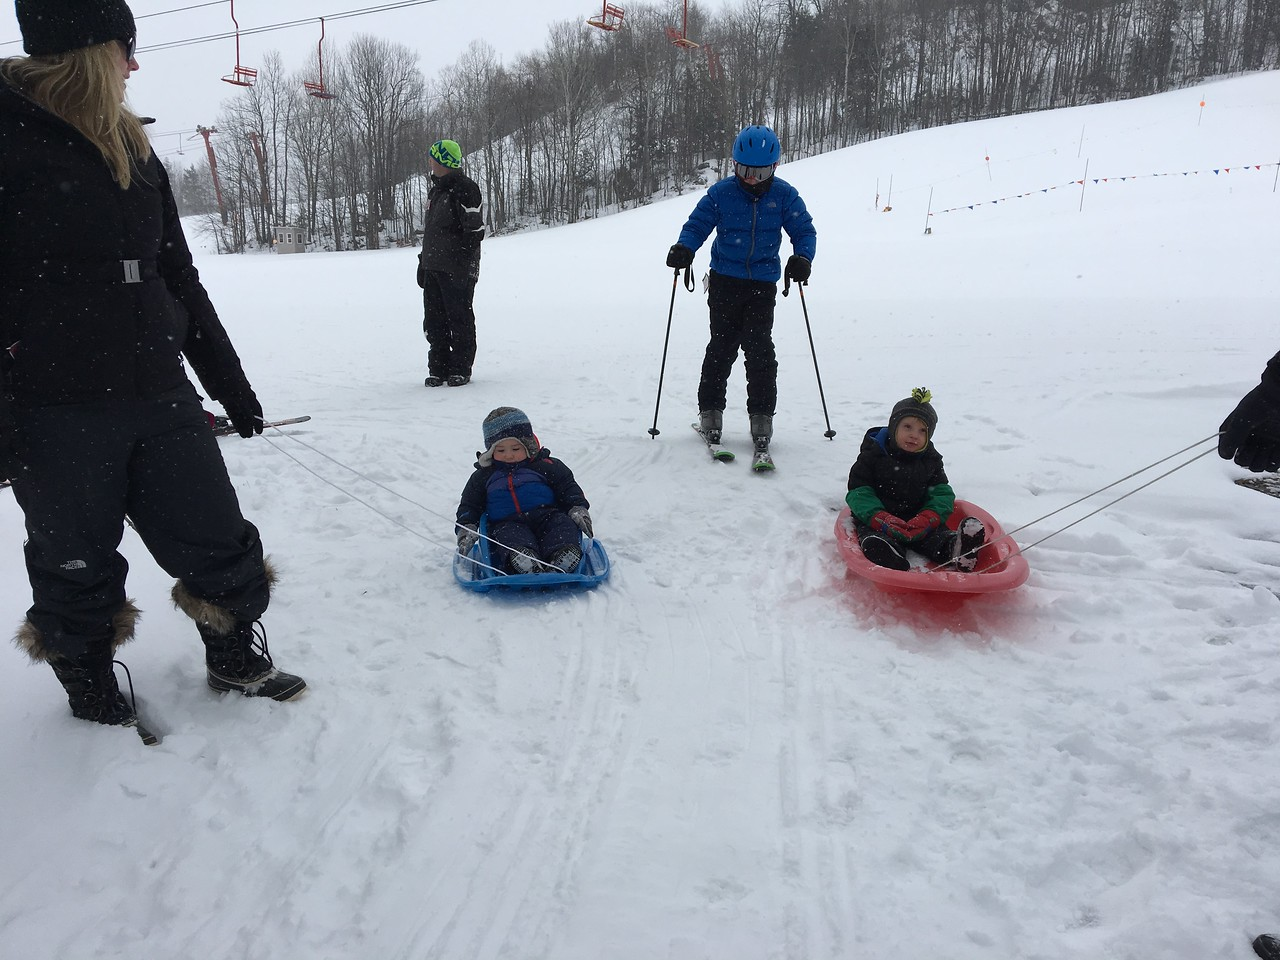 OUR VERY SMALLEST FUTURE SKIERS ( RYAN AND BECKETT) GET OUT ON THEIR SLEDS